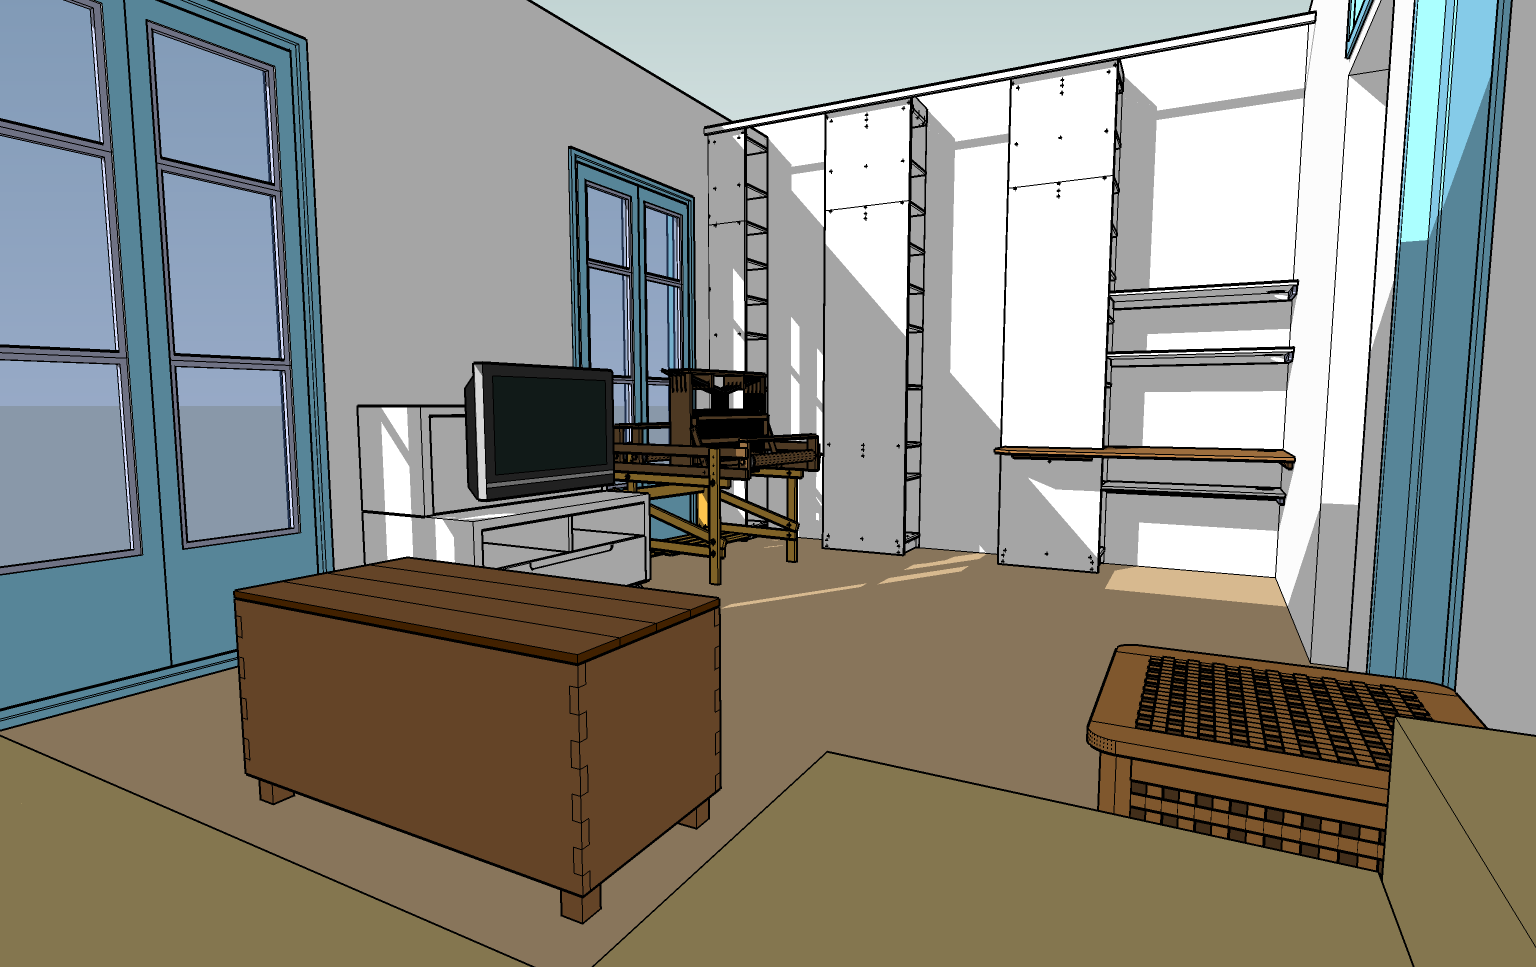 How To Use Google Sketchup For Kitchen Design